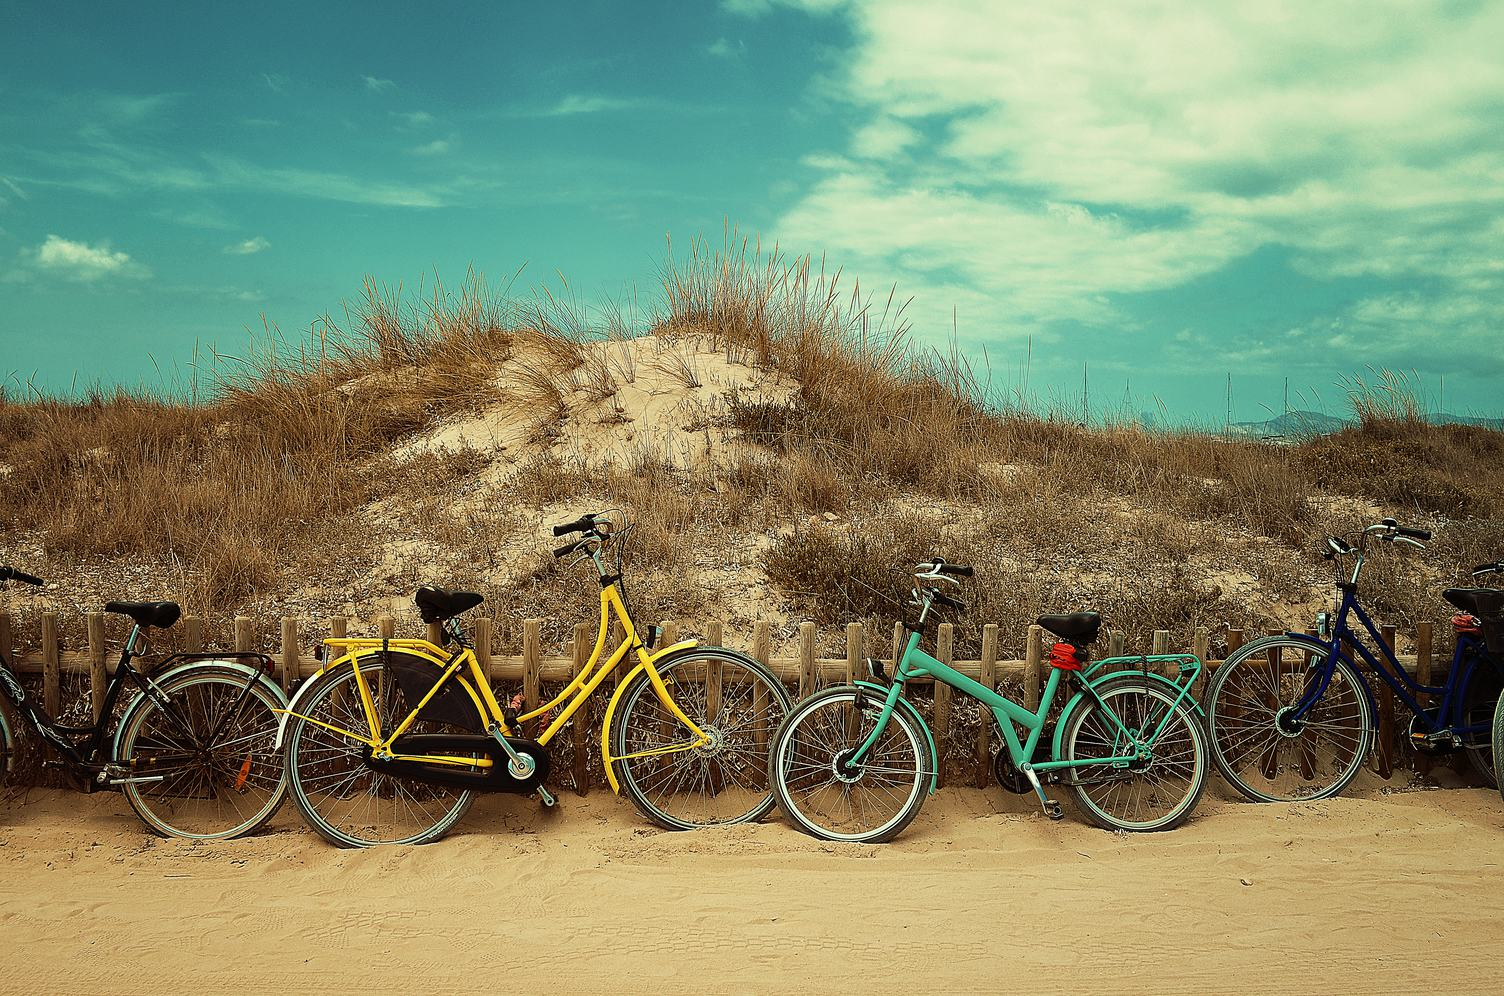 Colorful Vintage Bicycles Leaning against Wooden Fence at Beach